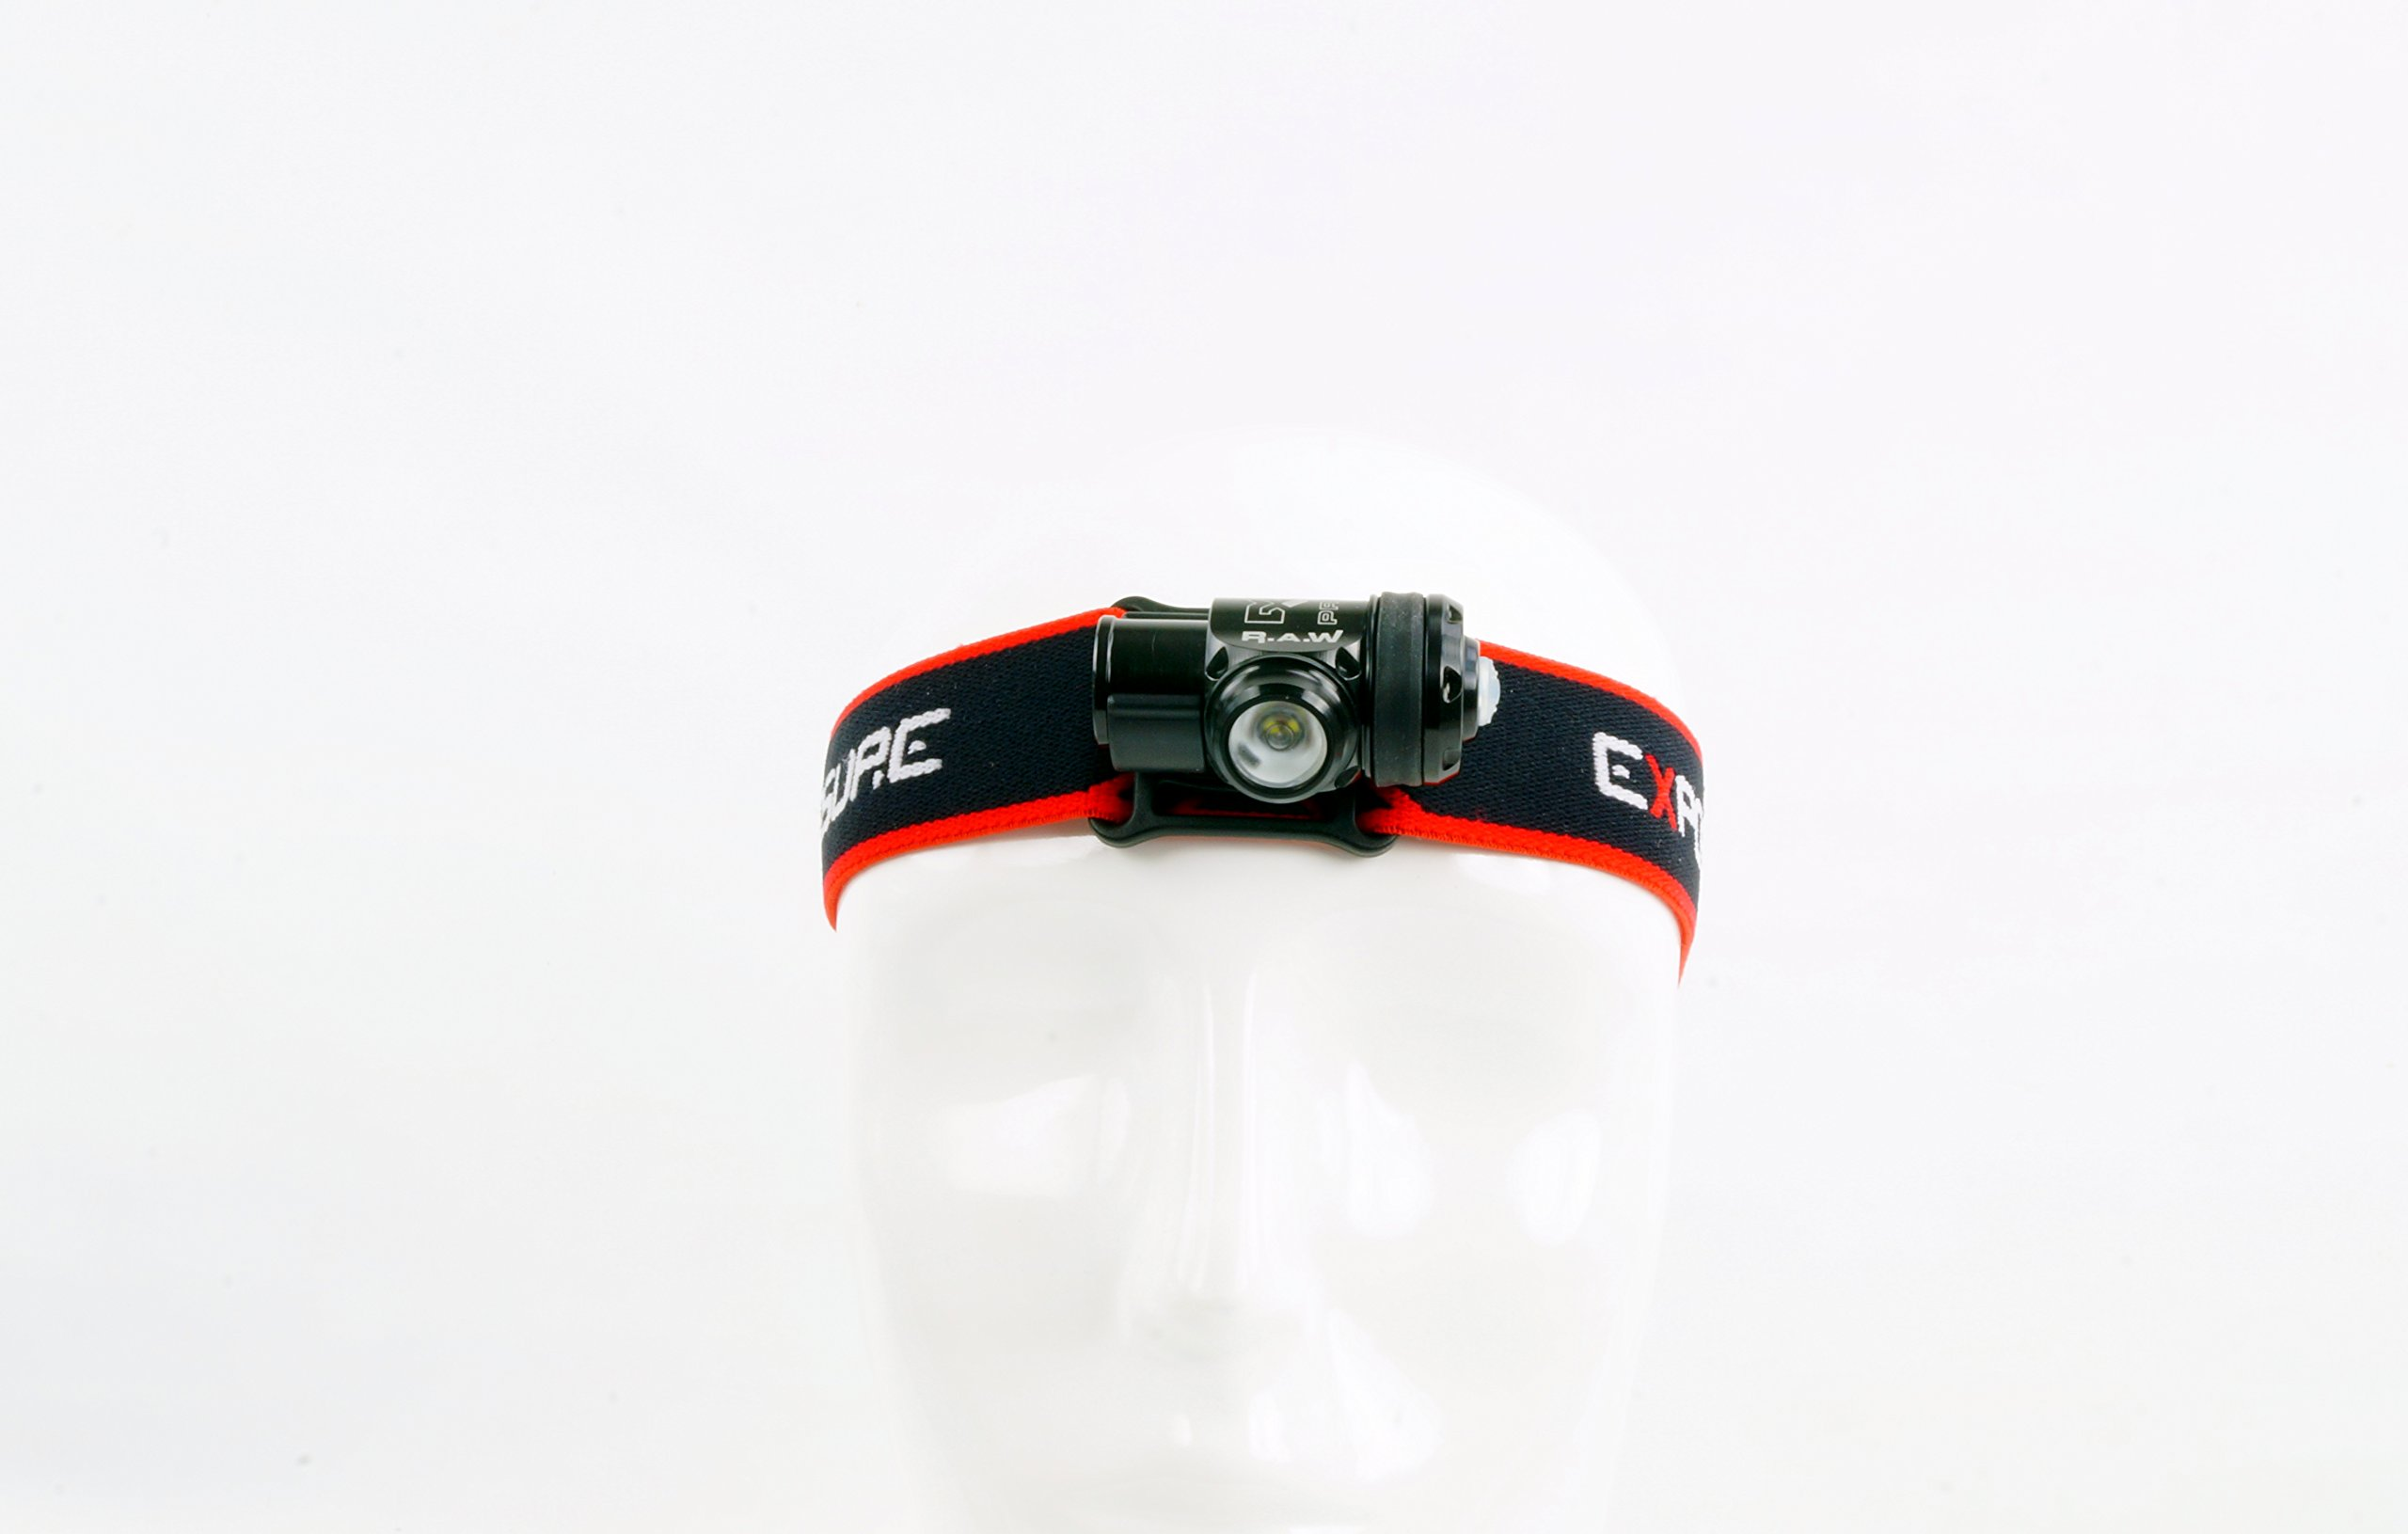 Exposure Lights R.A.W. PRO Edition 200 Lumen Red & White waterproof head Torch Made In Great Britain by Exposure Lights (Image #3)